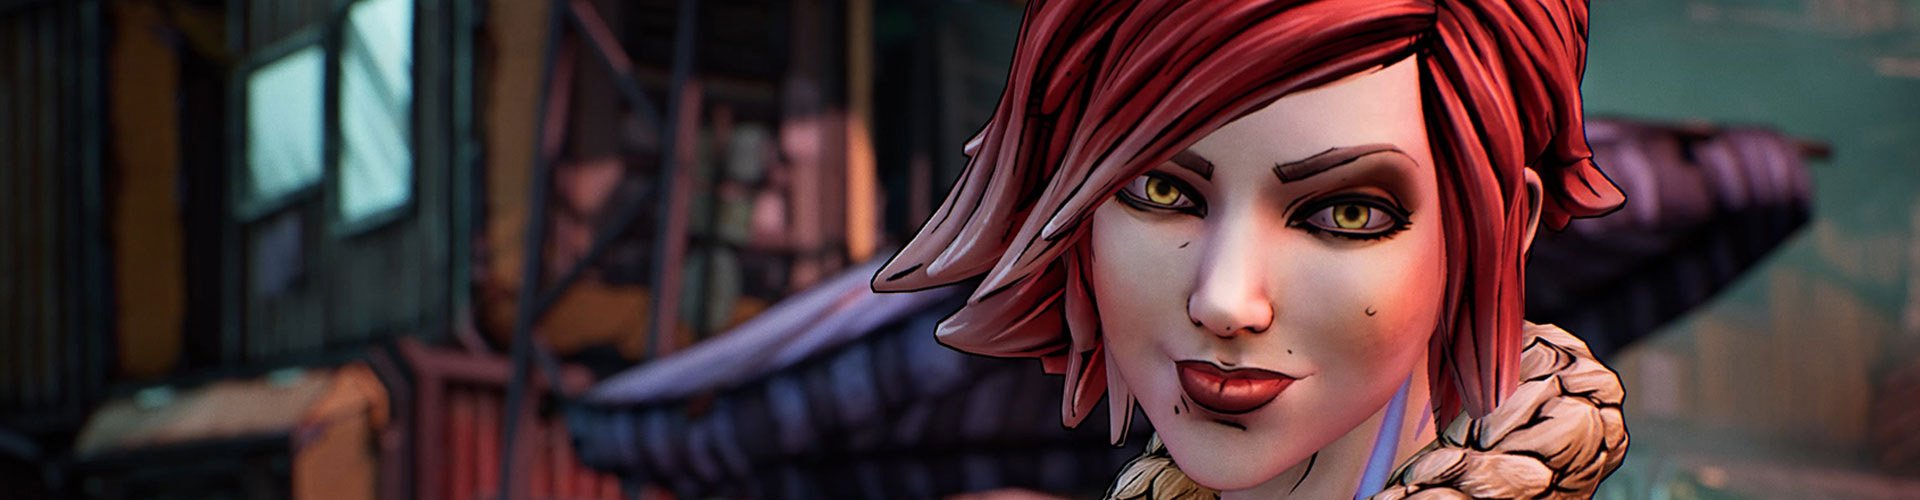 Borderlands 3 FAQ and guide - Lilith